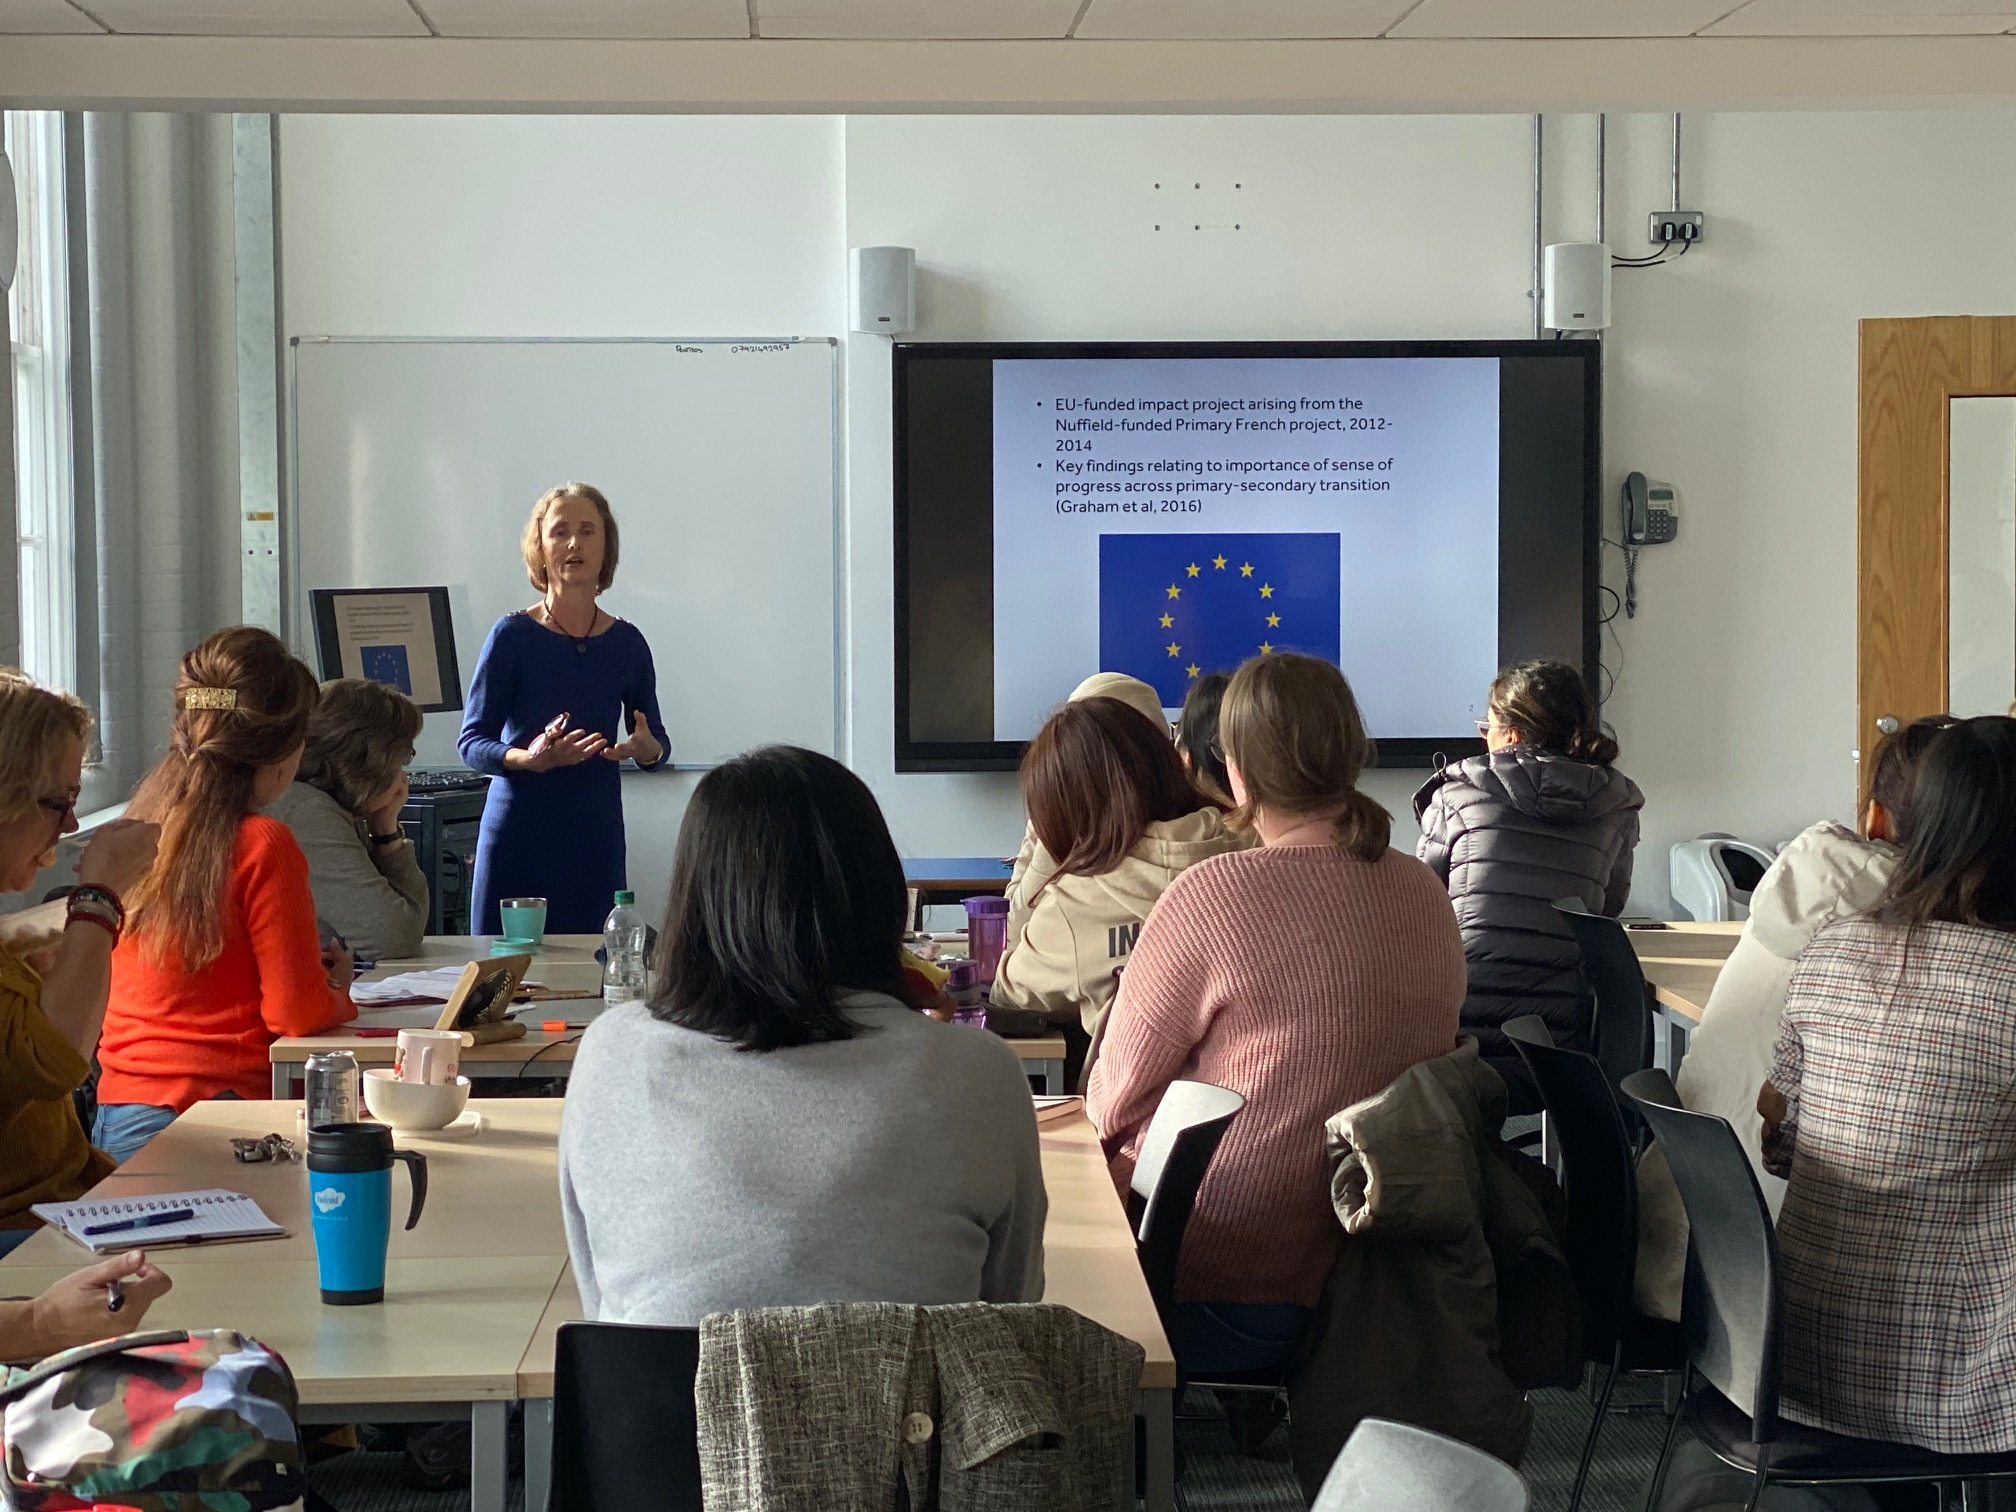 NEWS – Prof. Suzanne Graham (Professor of Language and Education) shared her research as part of the Institute's lunchtime research seminar series